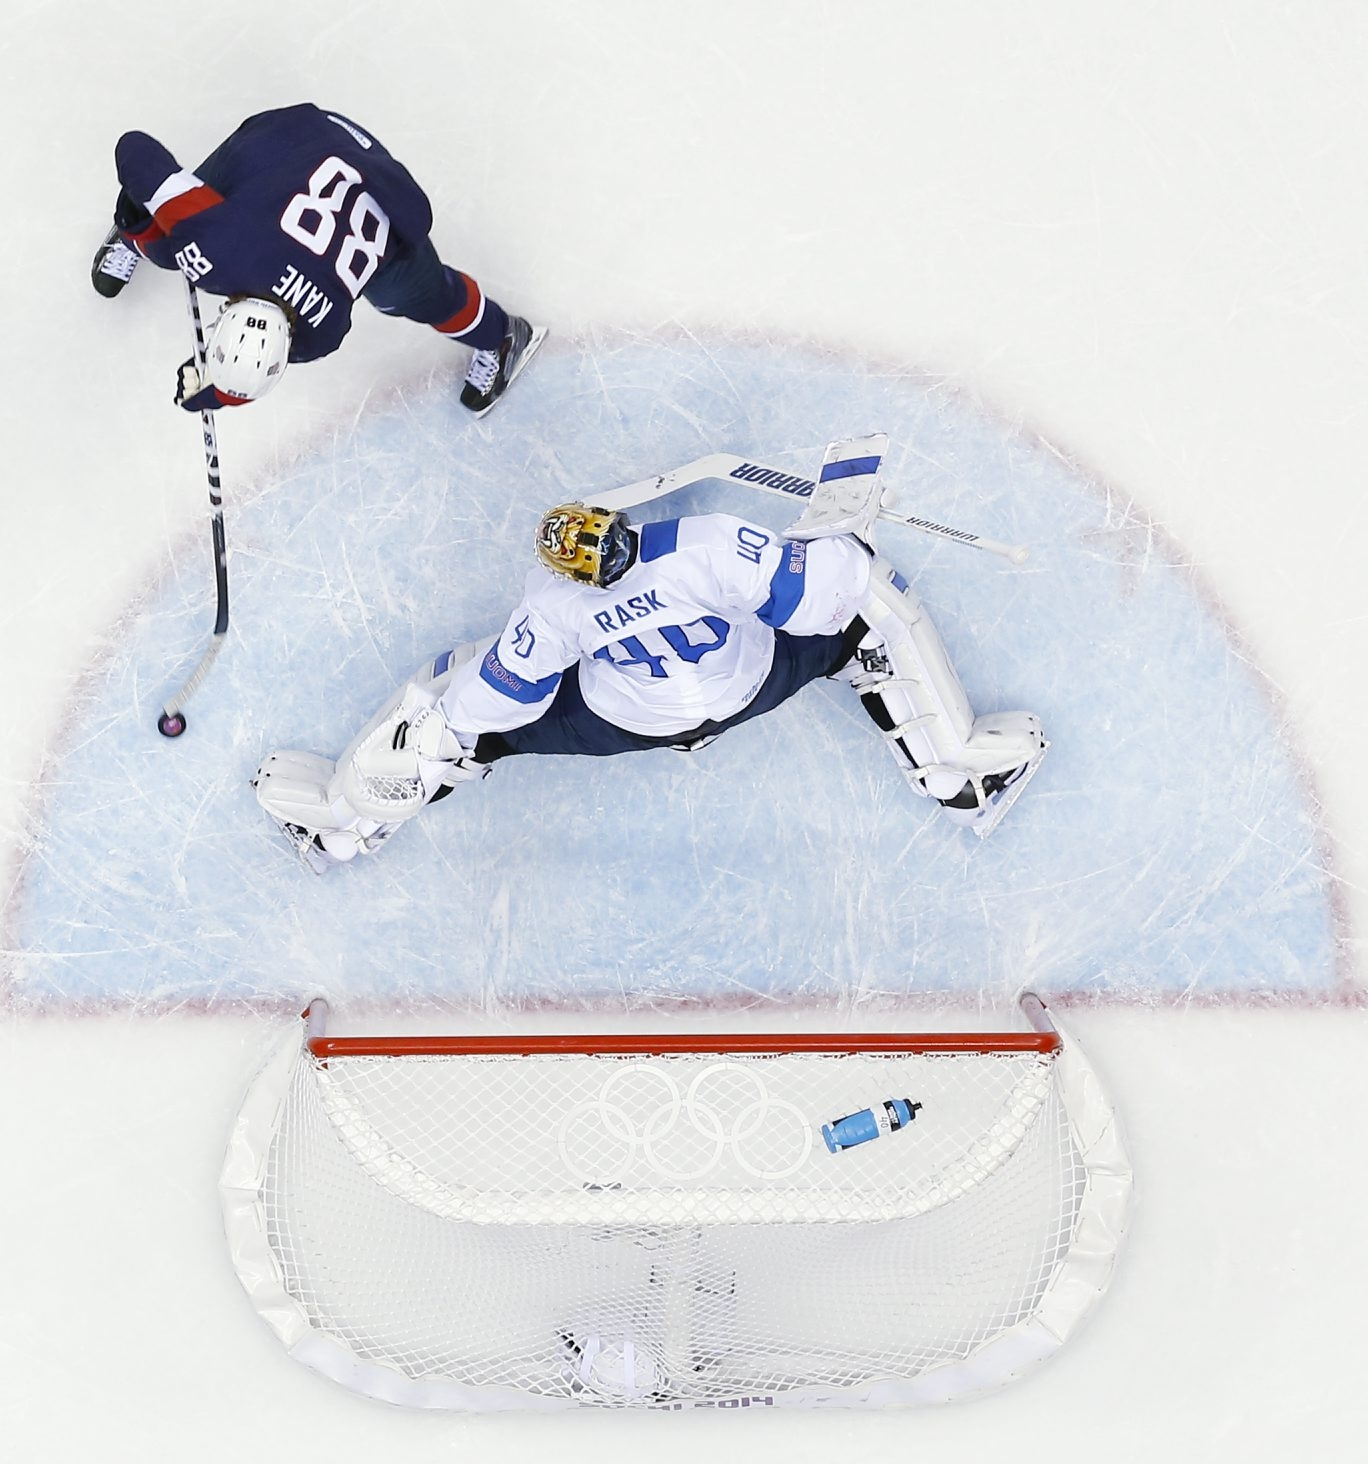 Finland goaltender Tuukka Rask blocks a penalty shot by U.S. forward Patrick Kane during the first period of Saturday's game.  Kane went 0 for 2 on penalty shots.